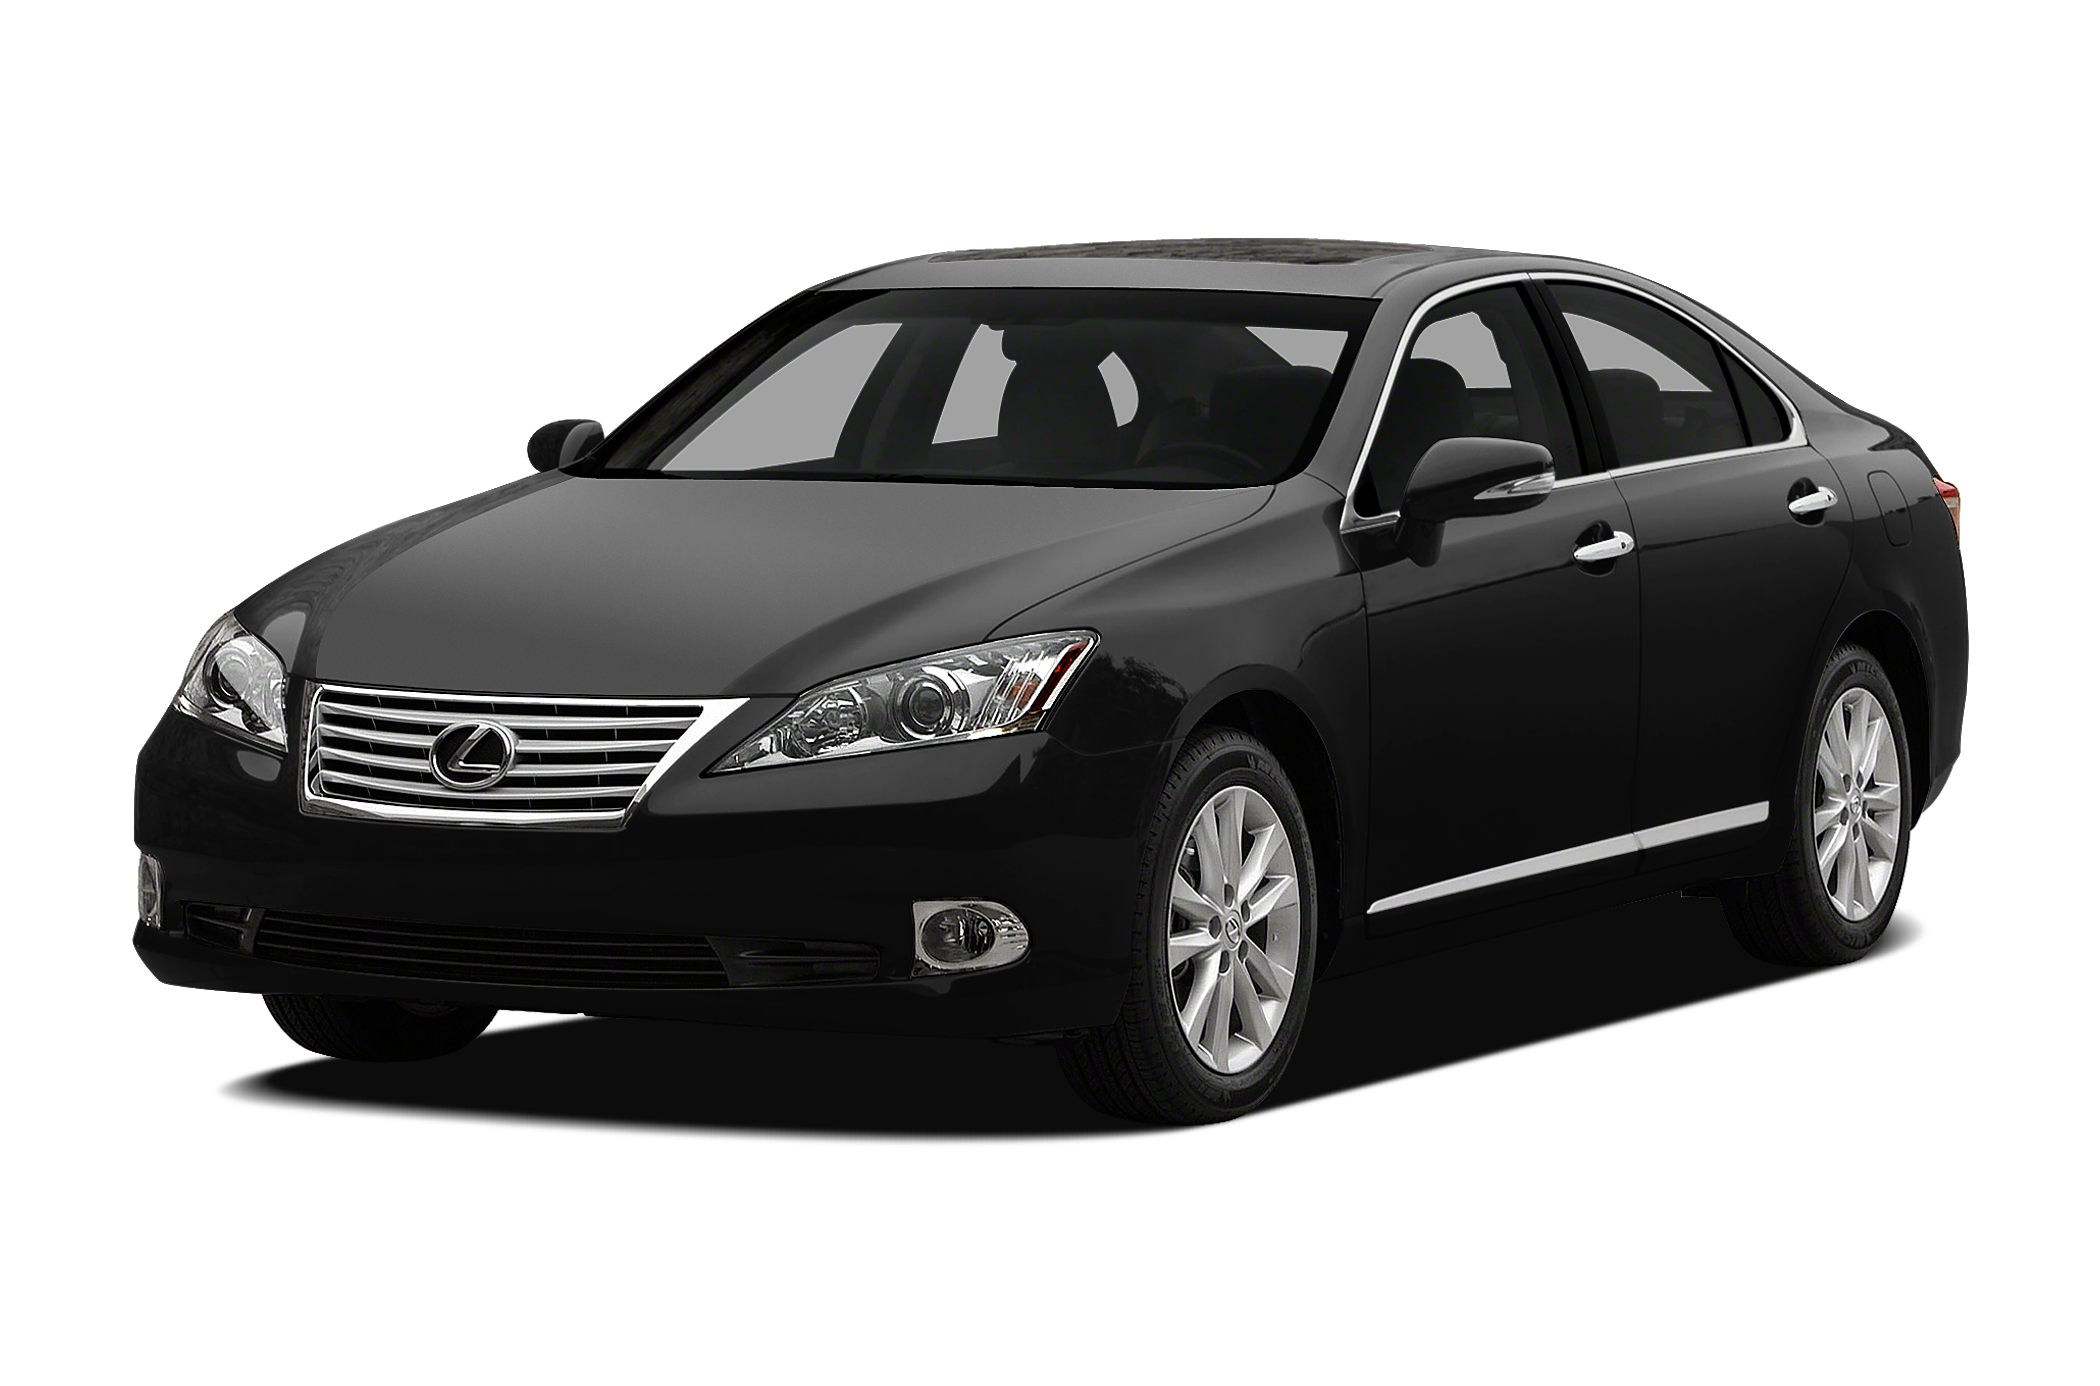 2012 Lexus ES 350 Base PREMIUM PLUS PKG1 OWNERDEALER MAINTAINEDCARFAX CERTIFIEDNAVIGATIO